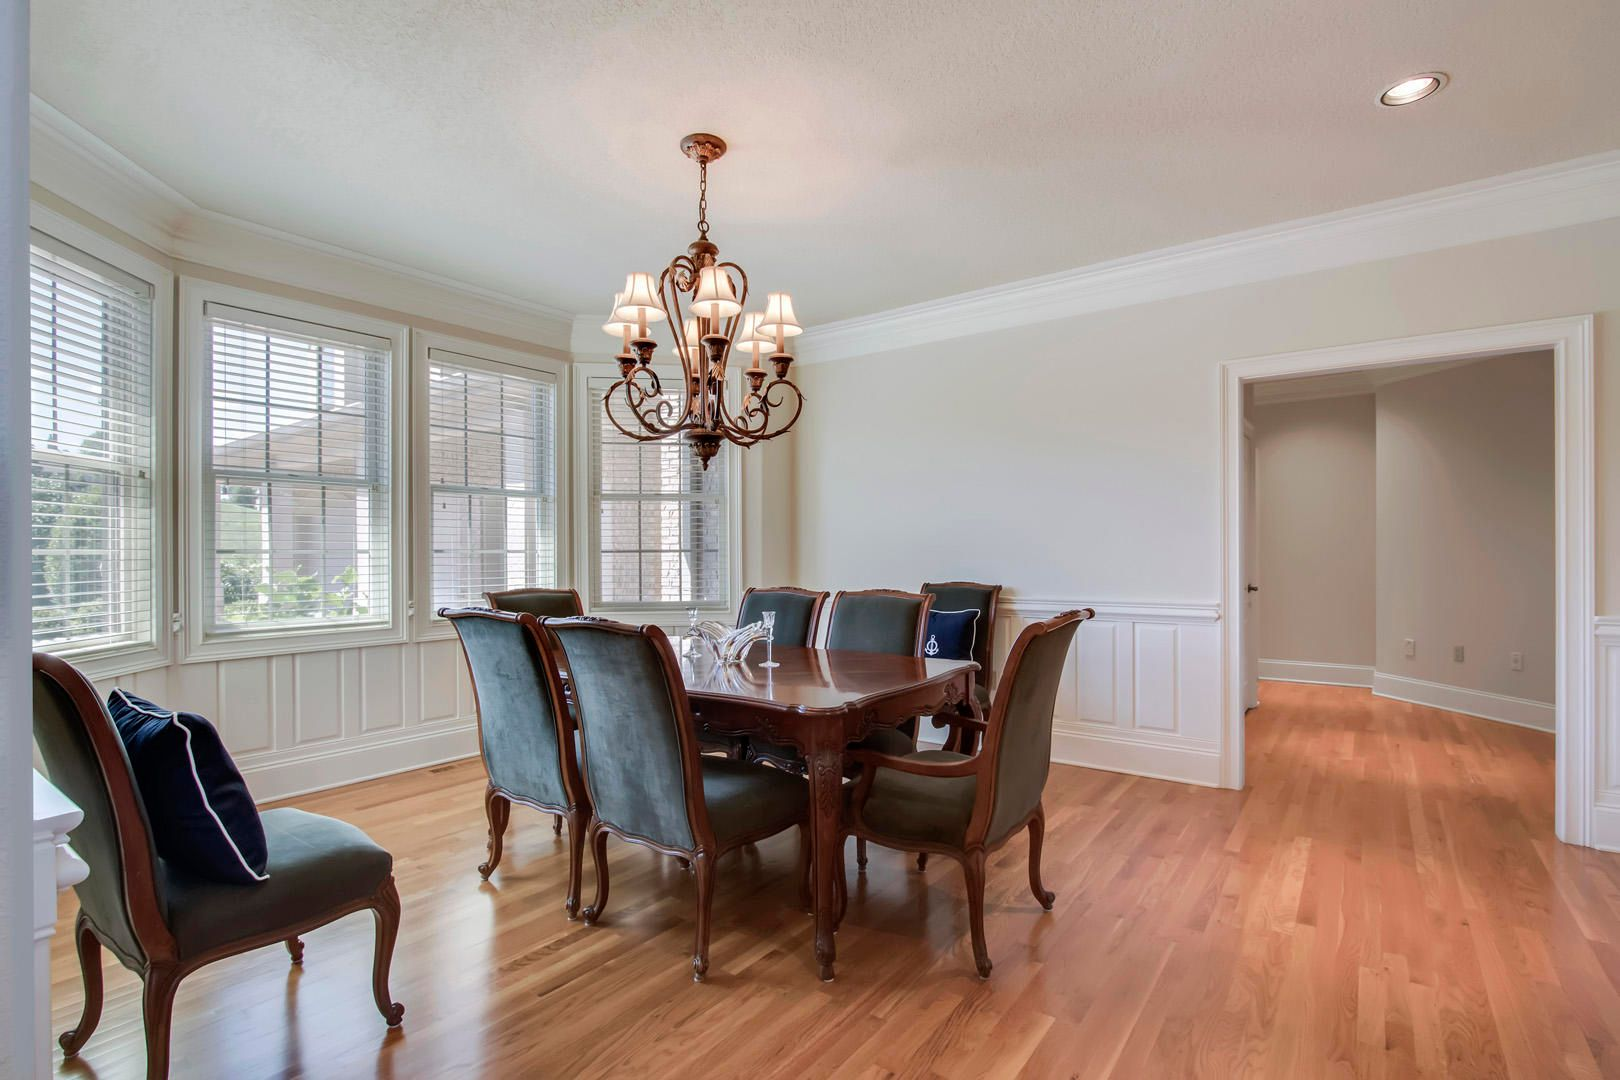 26_RockPointDrive_209_Dining03